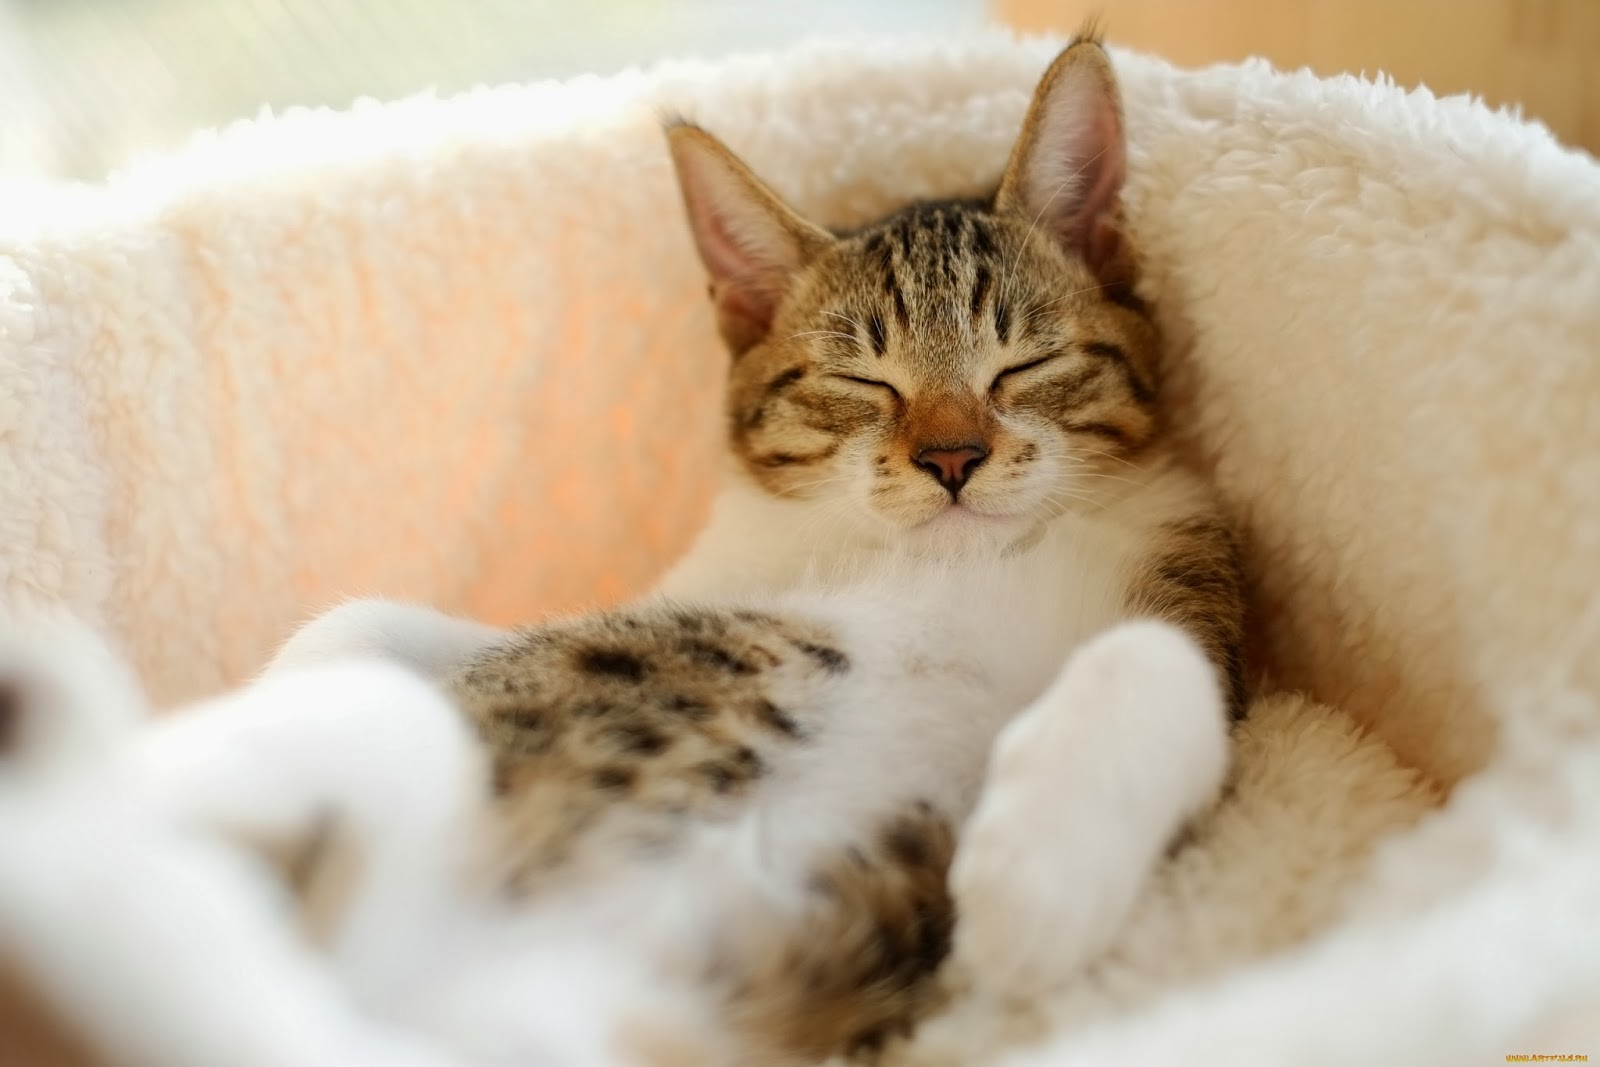 Sleeping cat wallpaper cute on pc  beautiful desktop wallpapers 2014